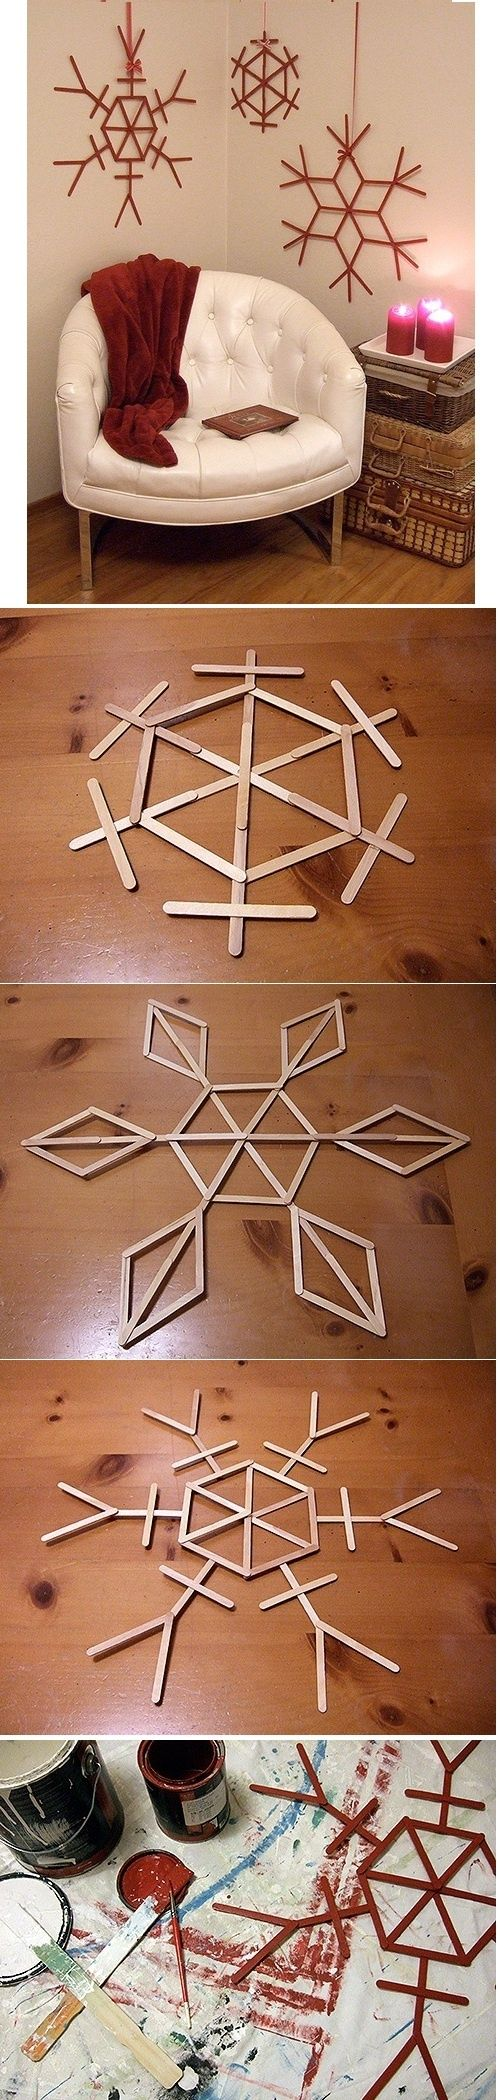 DIY Snowflake Popsicle Ornament